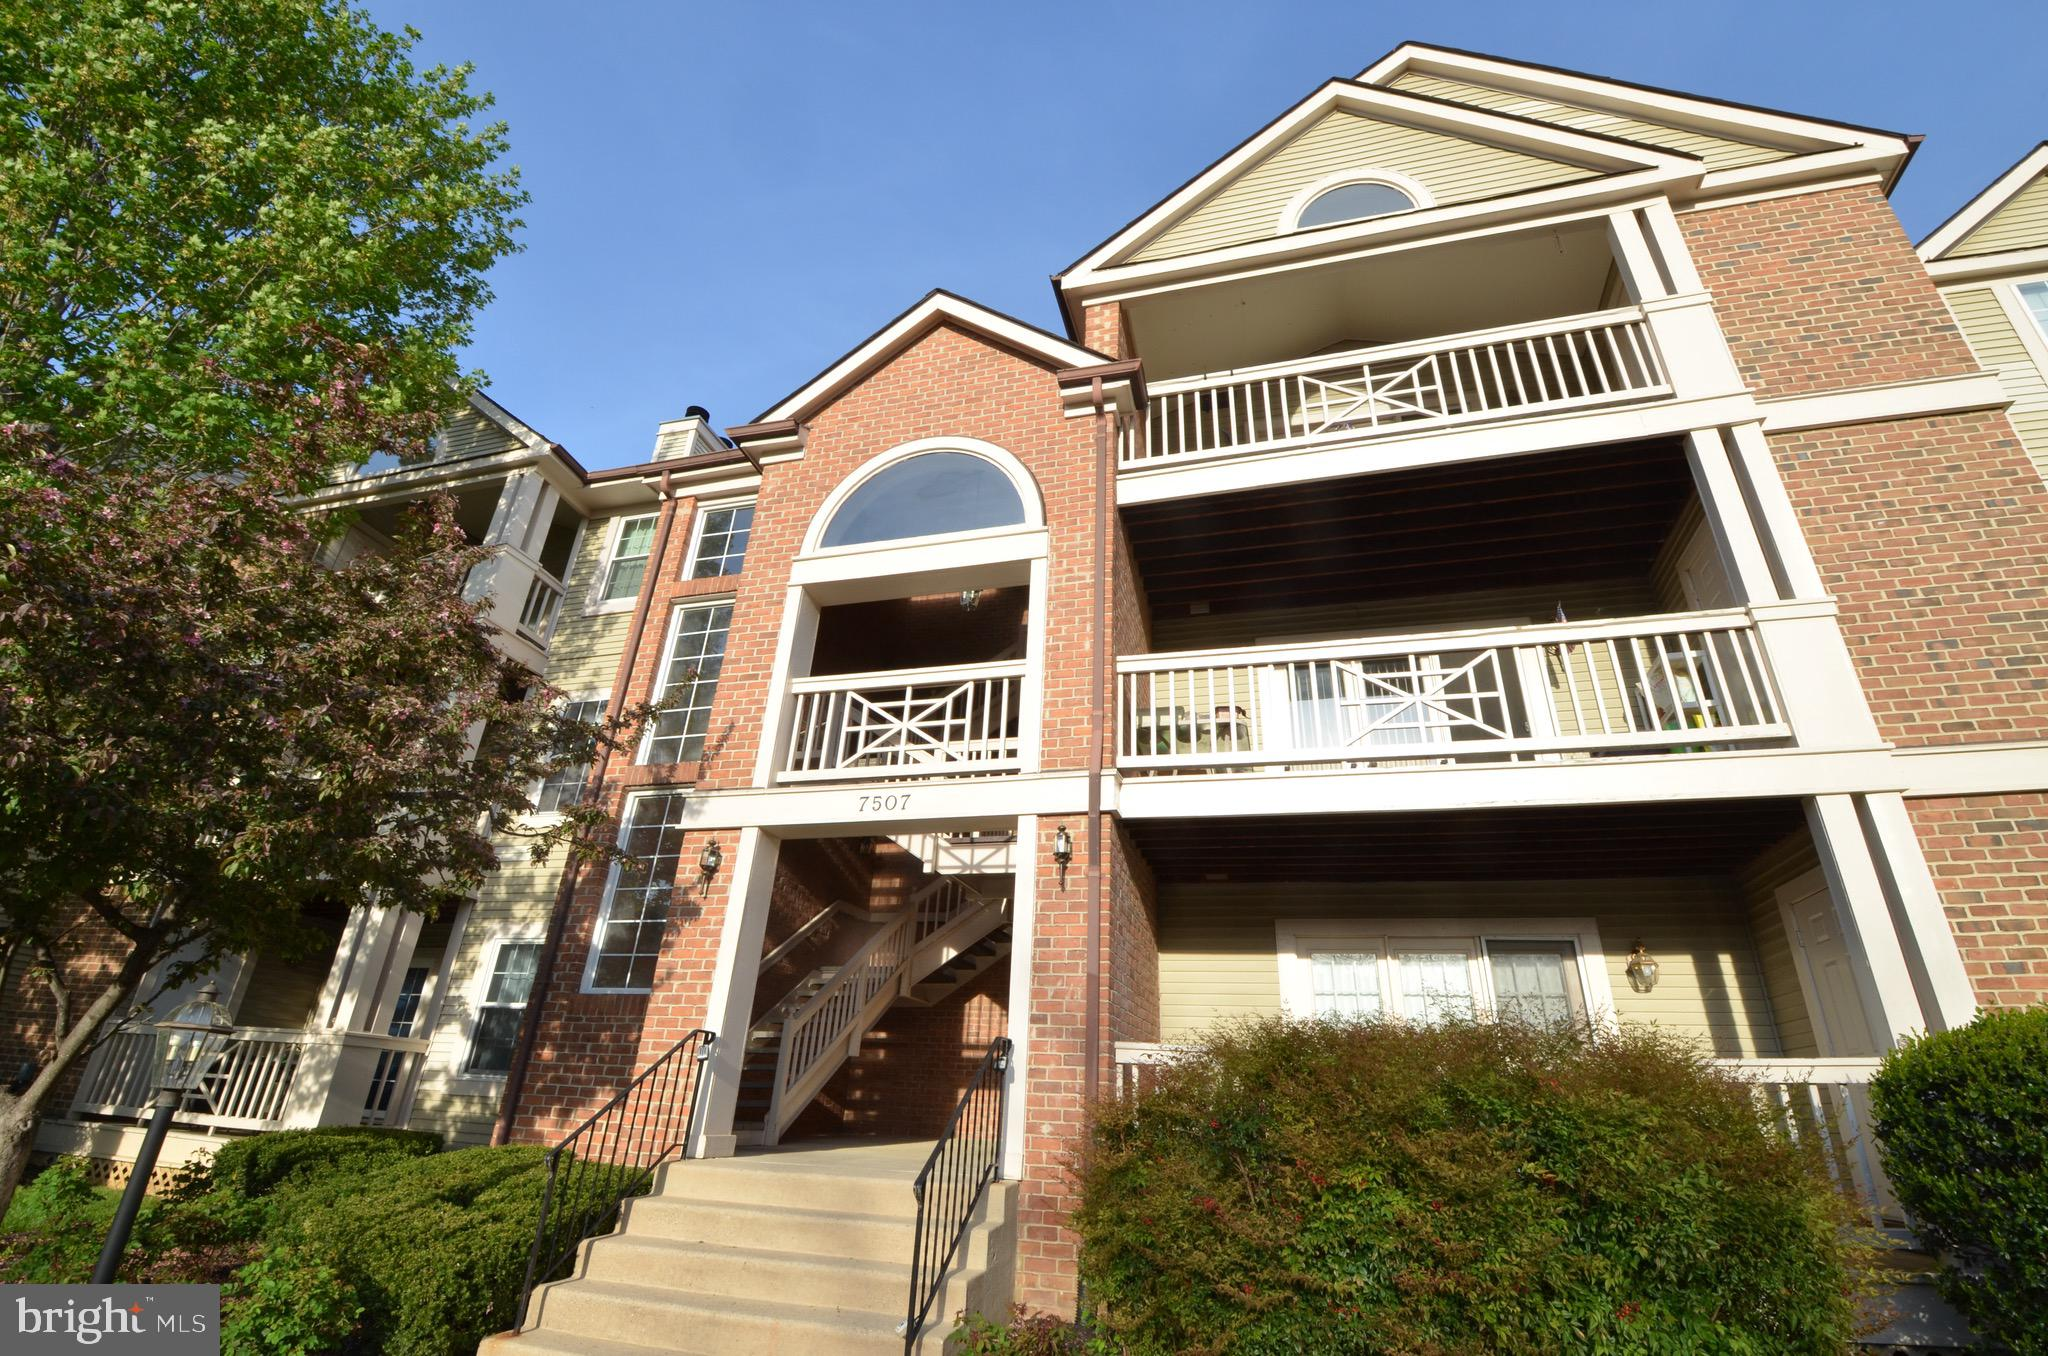 TWO BEDROOM TWO BATH CONDO IN THE HEART OF KINGSTOWNE!  Come and ready to be impressed by the pristine condition of this unit. Brand new HVAC, freshly painted top to bottom, new flooring throughout, new SS kitchen appliances, the list goes on! Enjoy the Kingstowne amenities as well as Stratford places pool. Easy commute to Ft Belvoir and metro to DC and pentagon.  Close to bus line, blue line metro, Kingstowne shopping center, restaurants, movie theater and more!